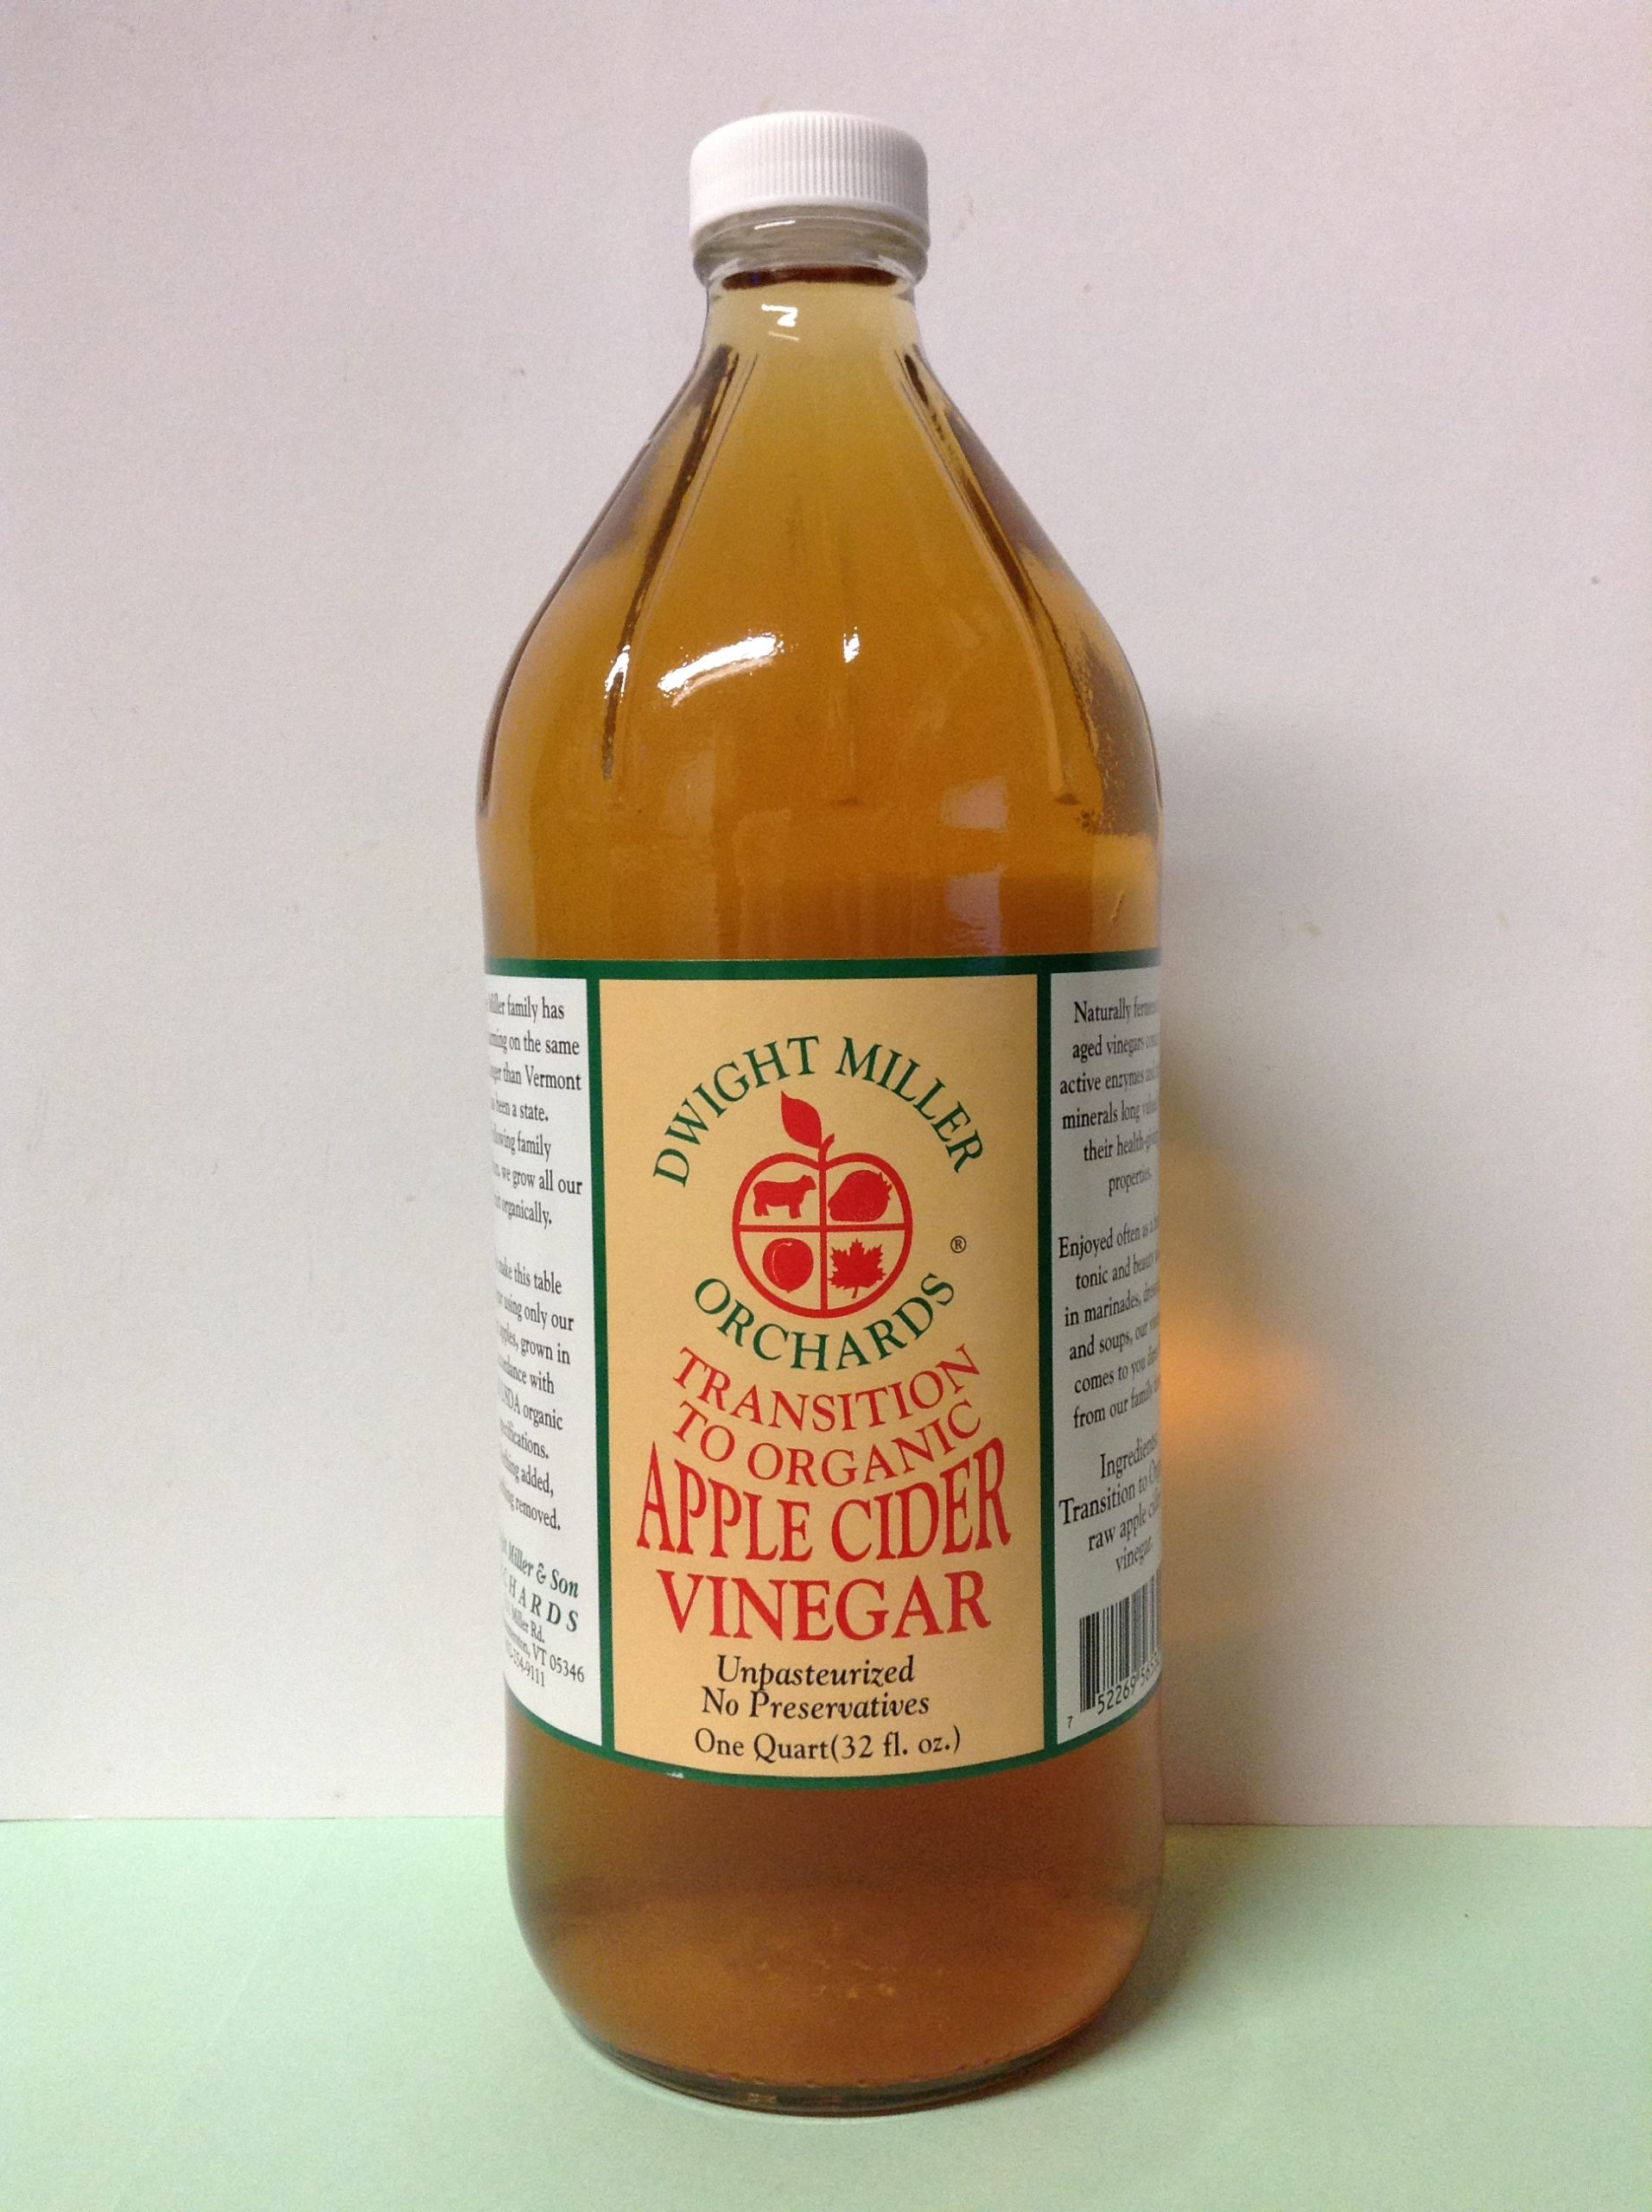 DWIGHT MILLER ORCHARDS Apple Cider Vinegar